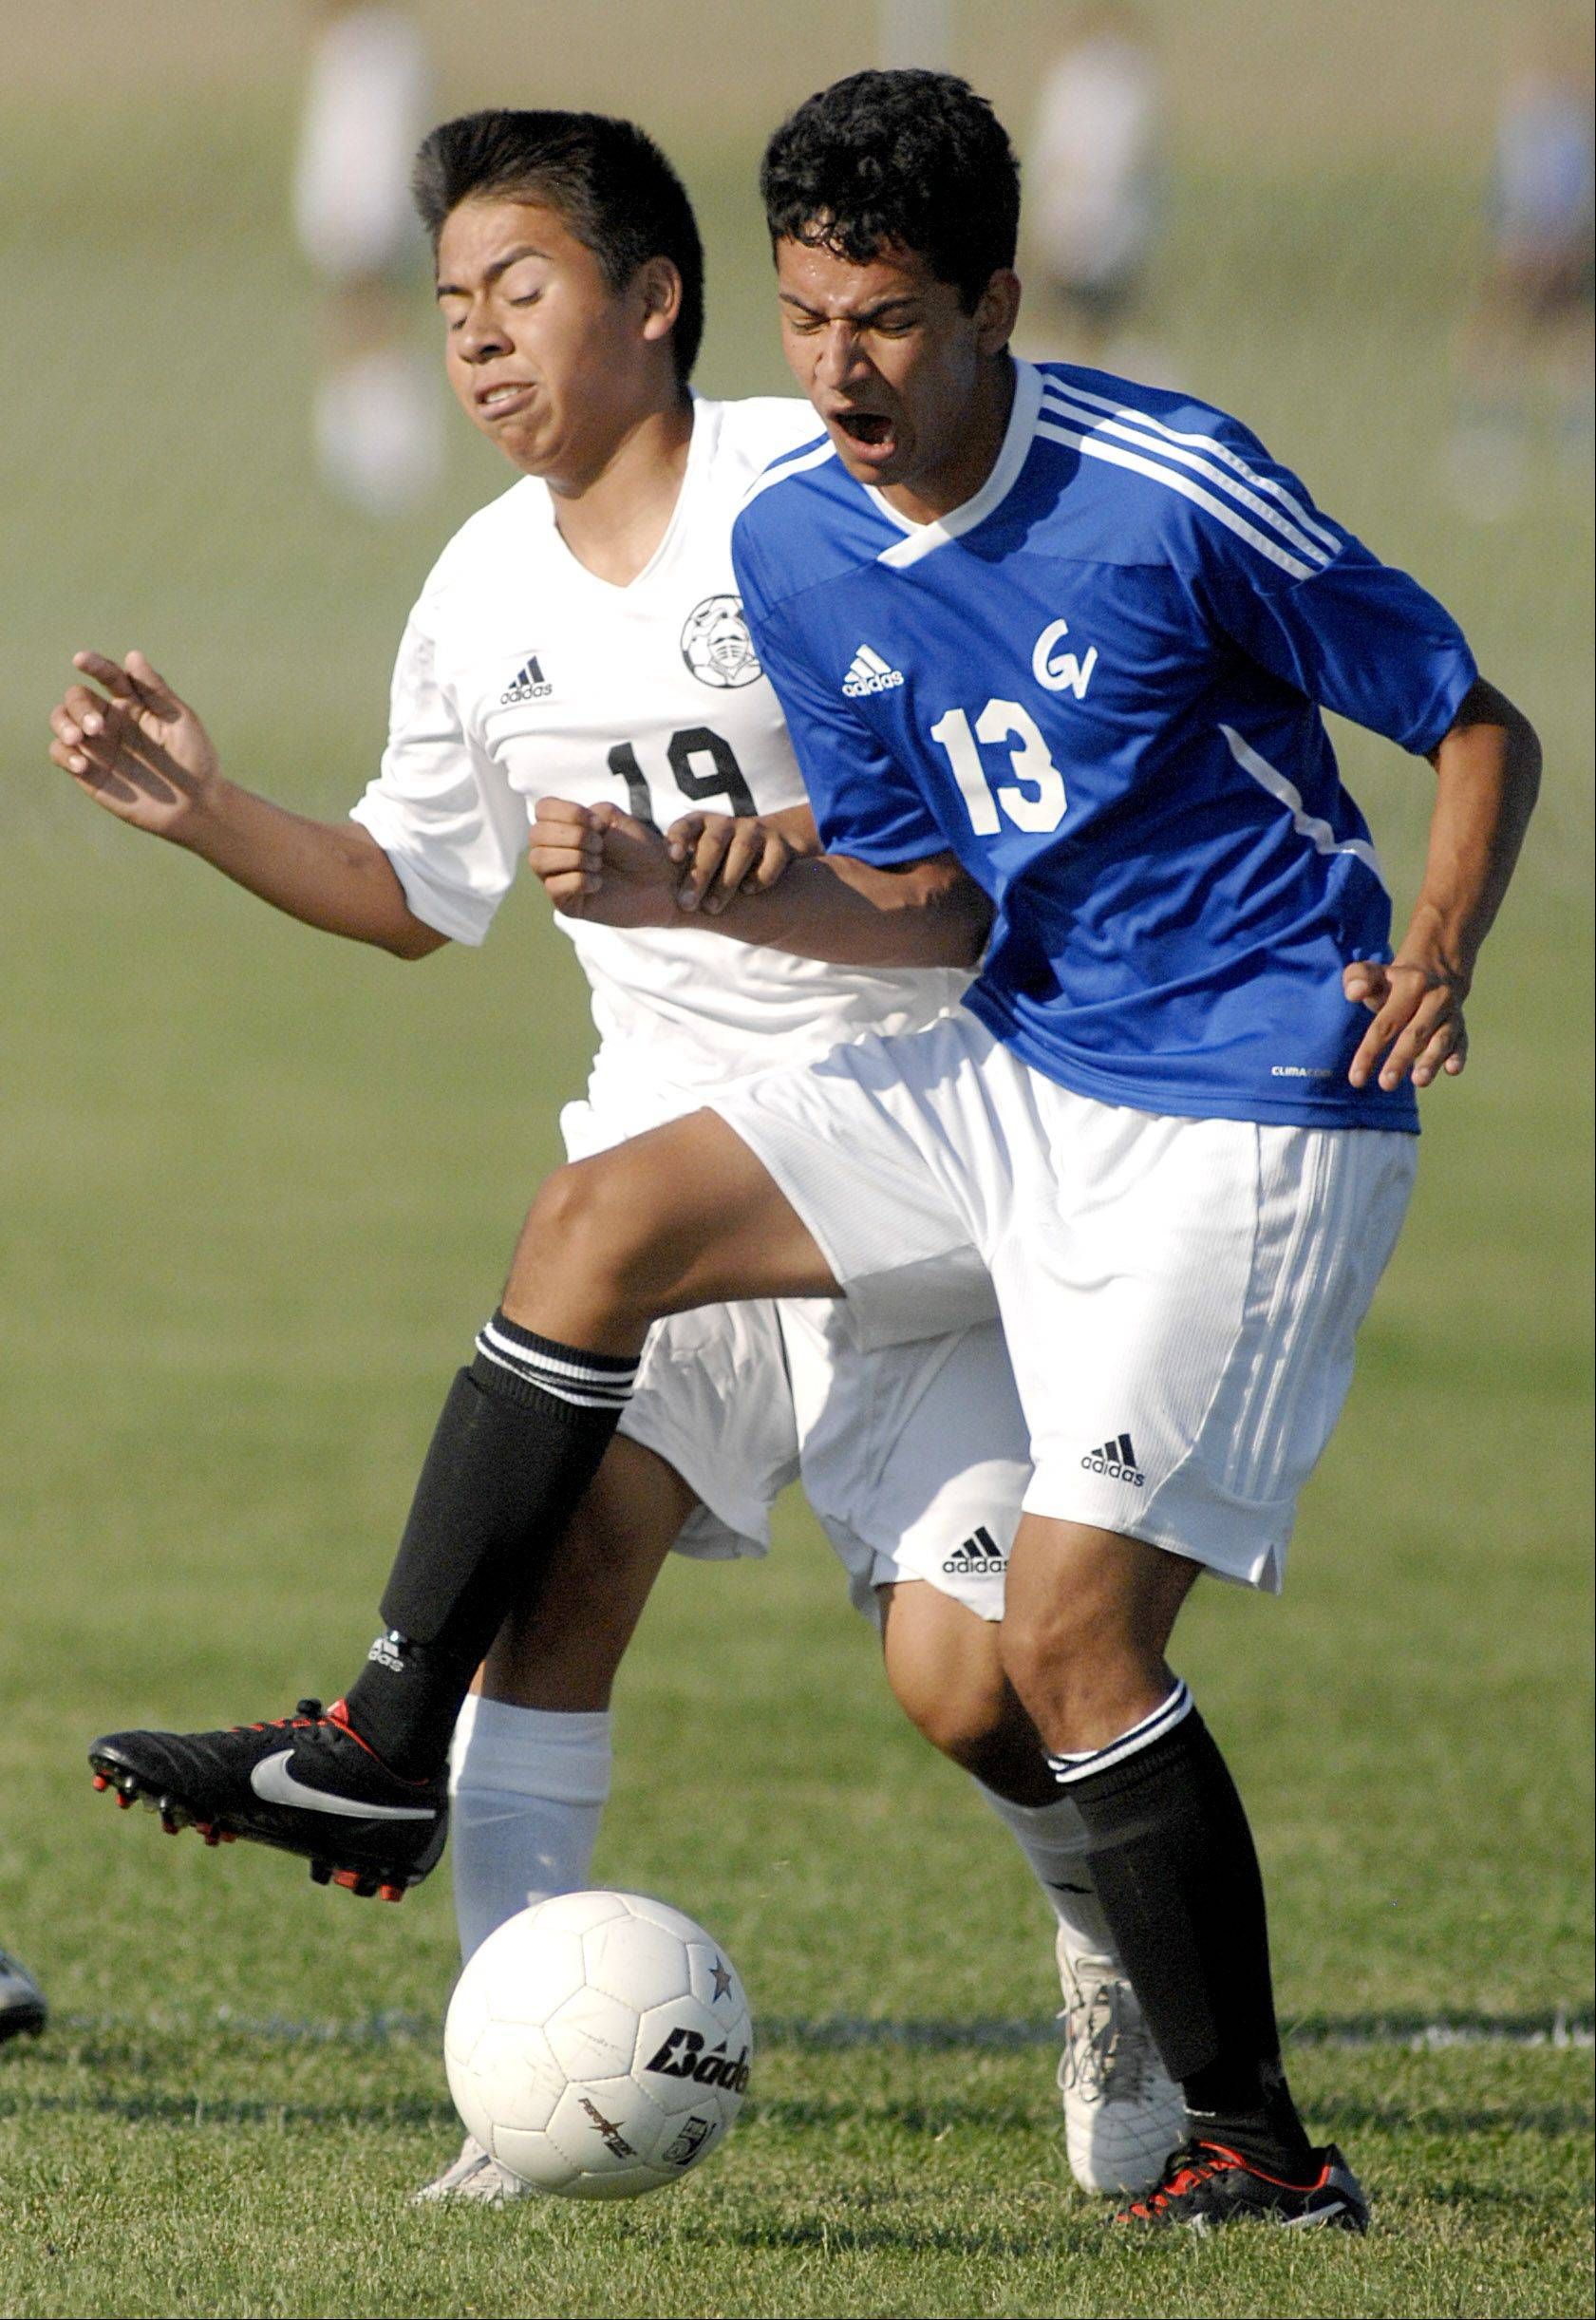 Kaneland's Ivan Bohorquez, left, and Geneva's Valentin Gonzalez battle for the ball in the first half on Thursday, August 30.